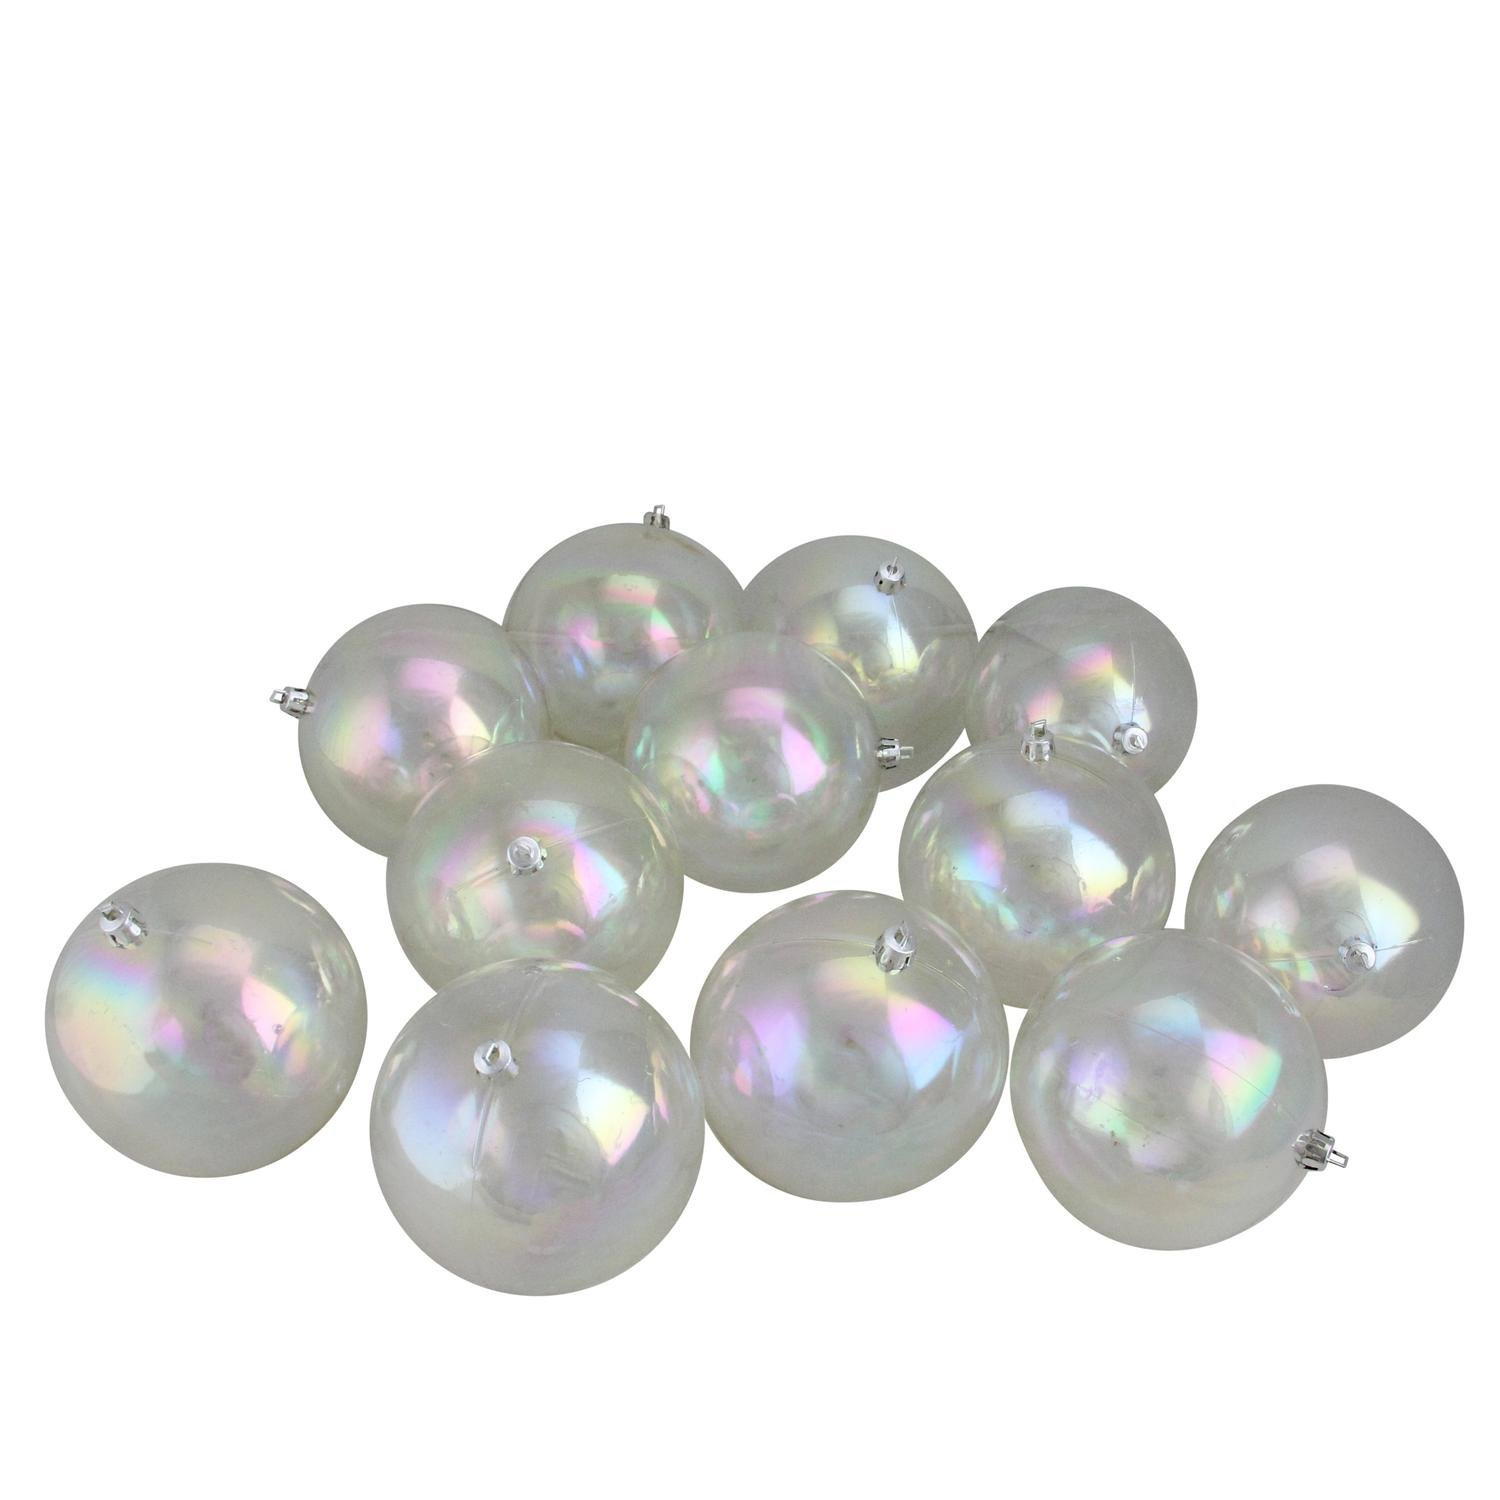 Northlight 12 Count Shatterproof Clear Iridescent Christmas Ball Ornaments, 4''